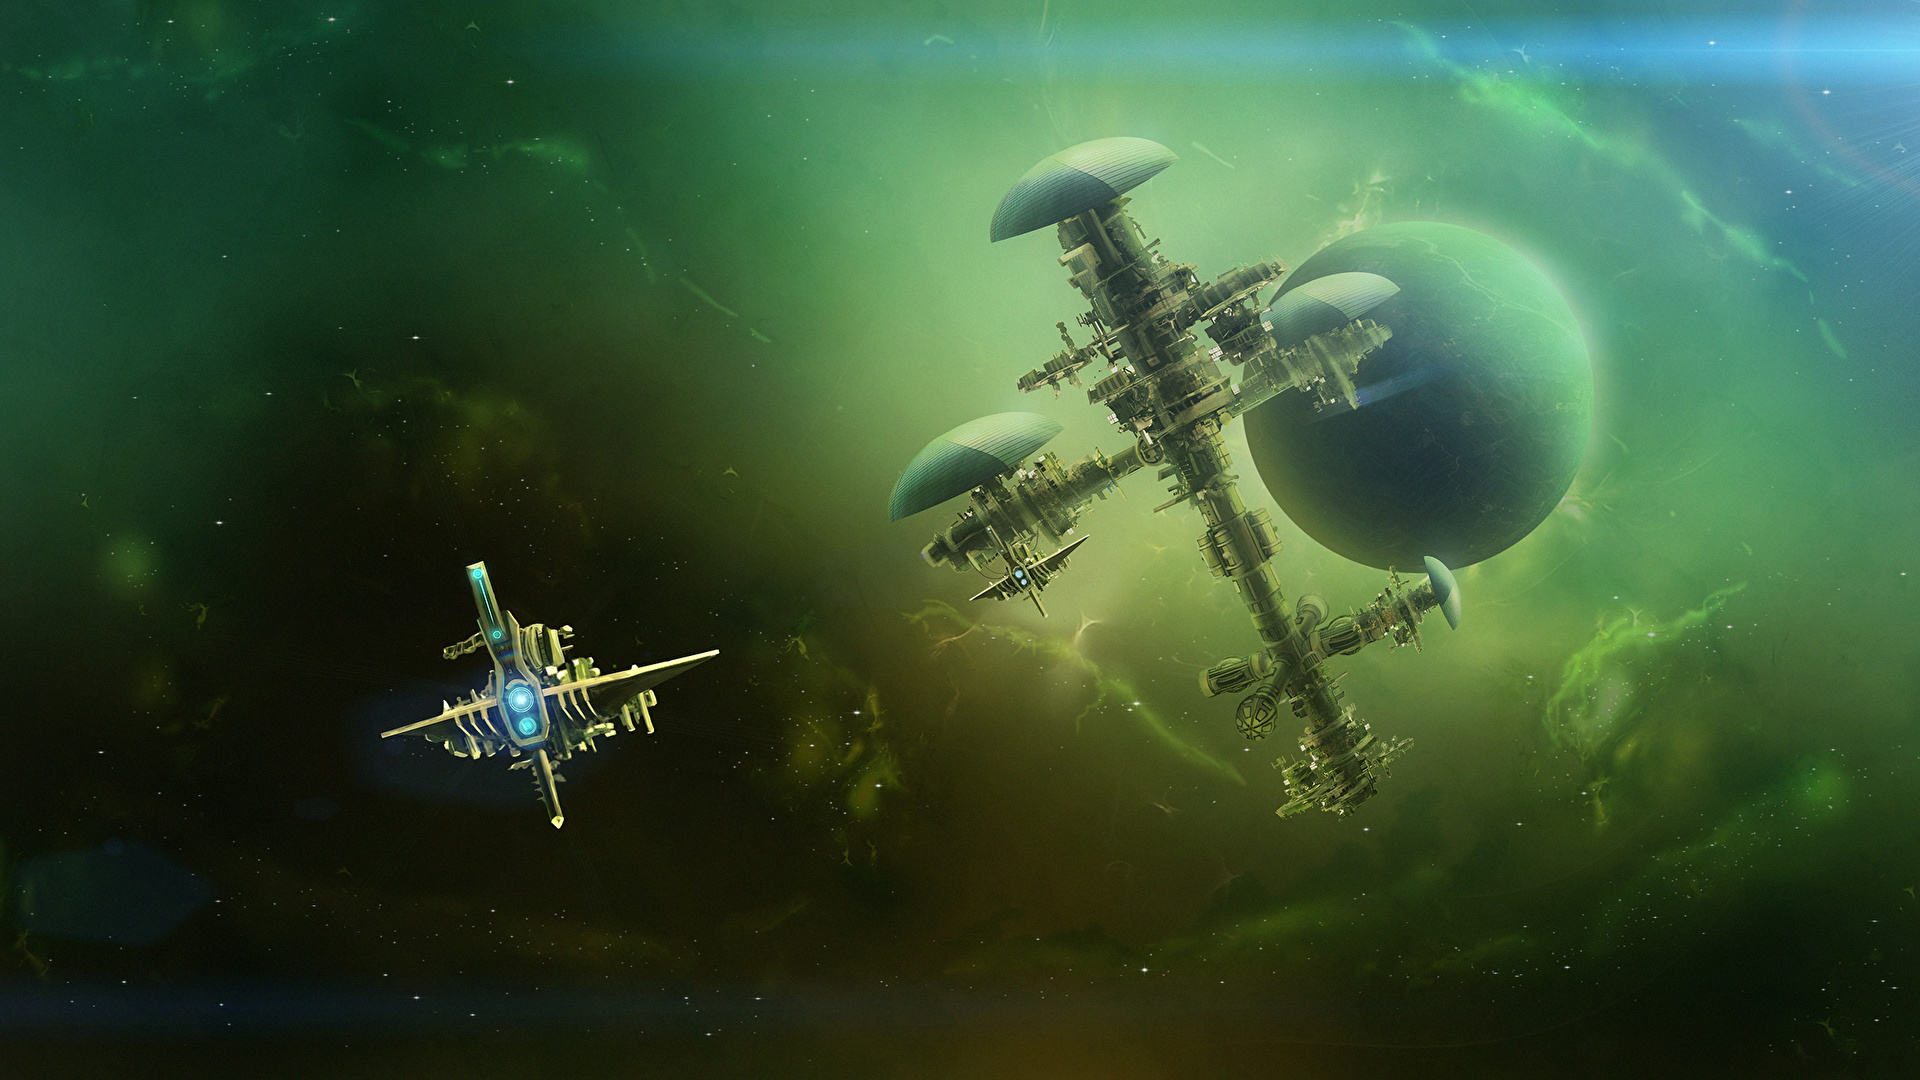 Photo Planets space station deep space Space Fantasy Ships 1920x1080